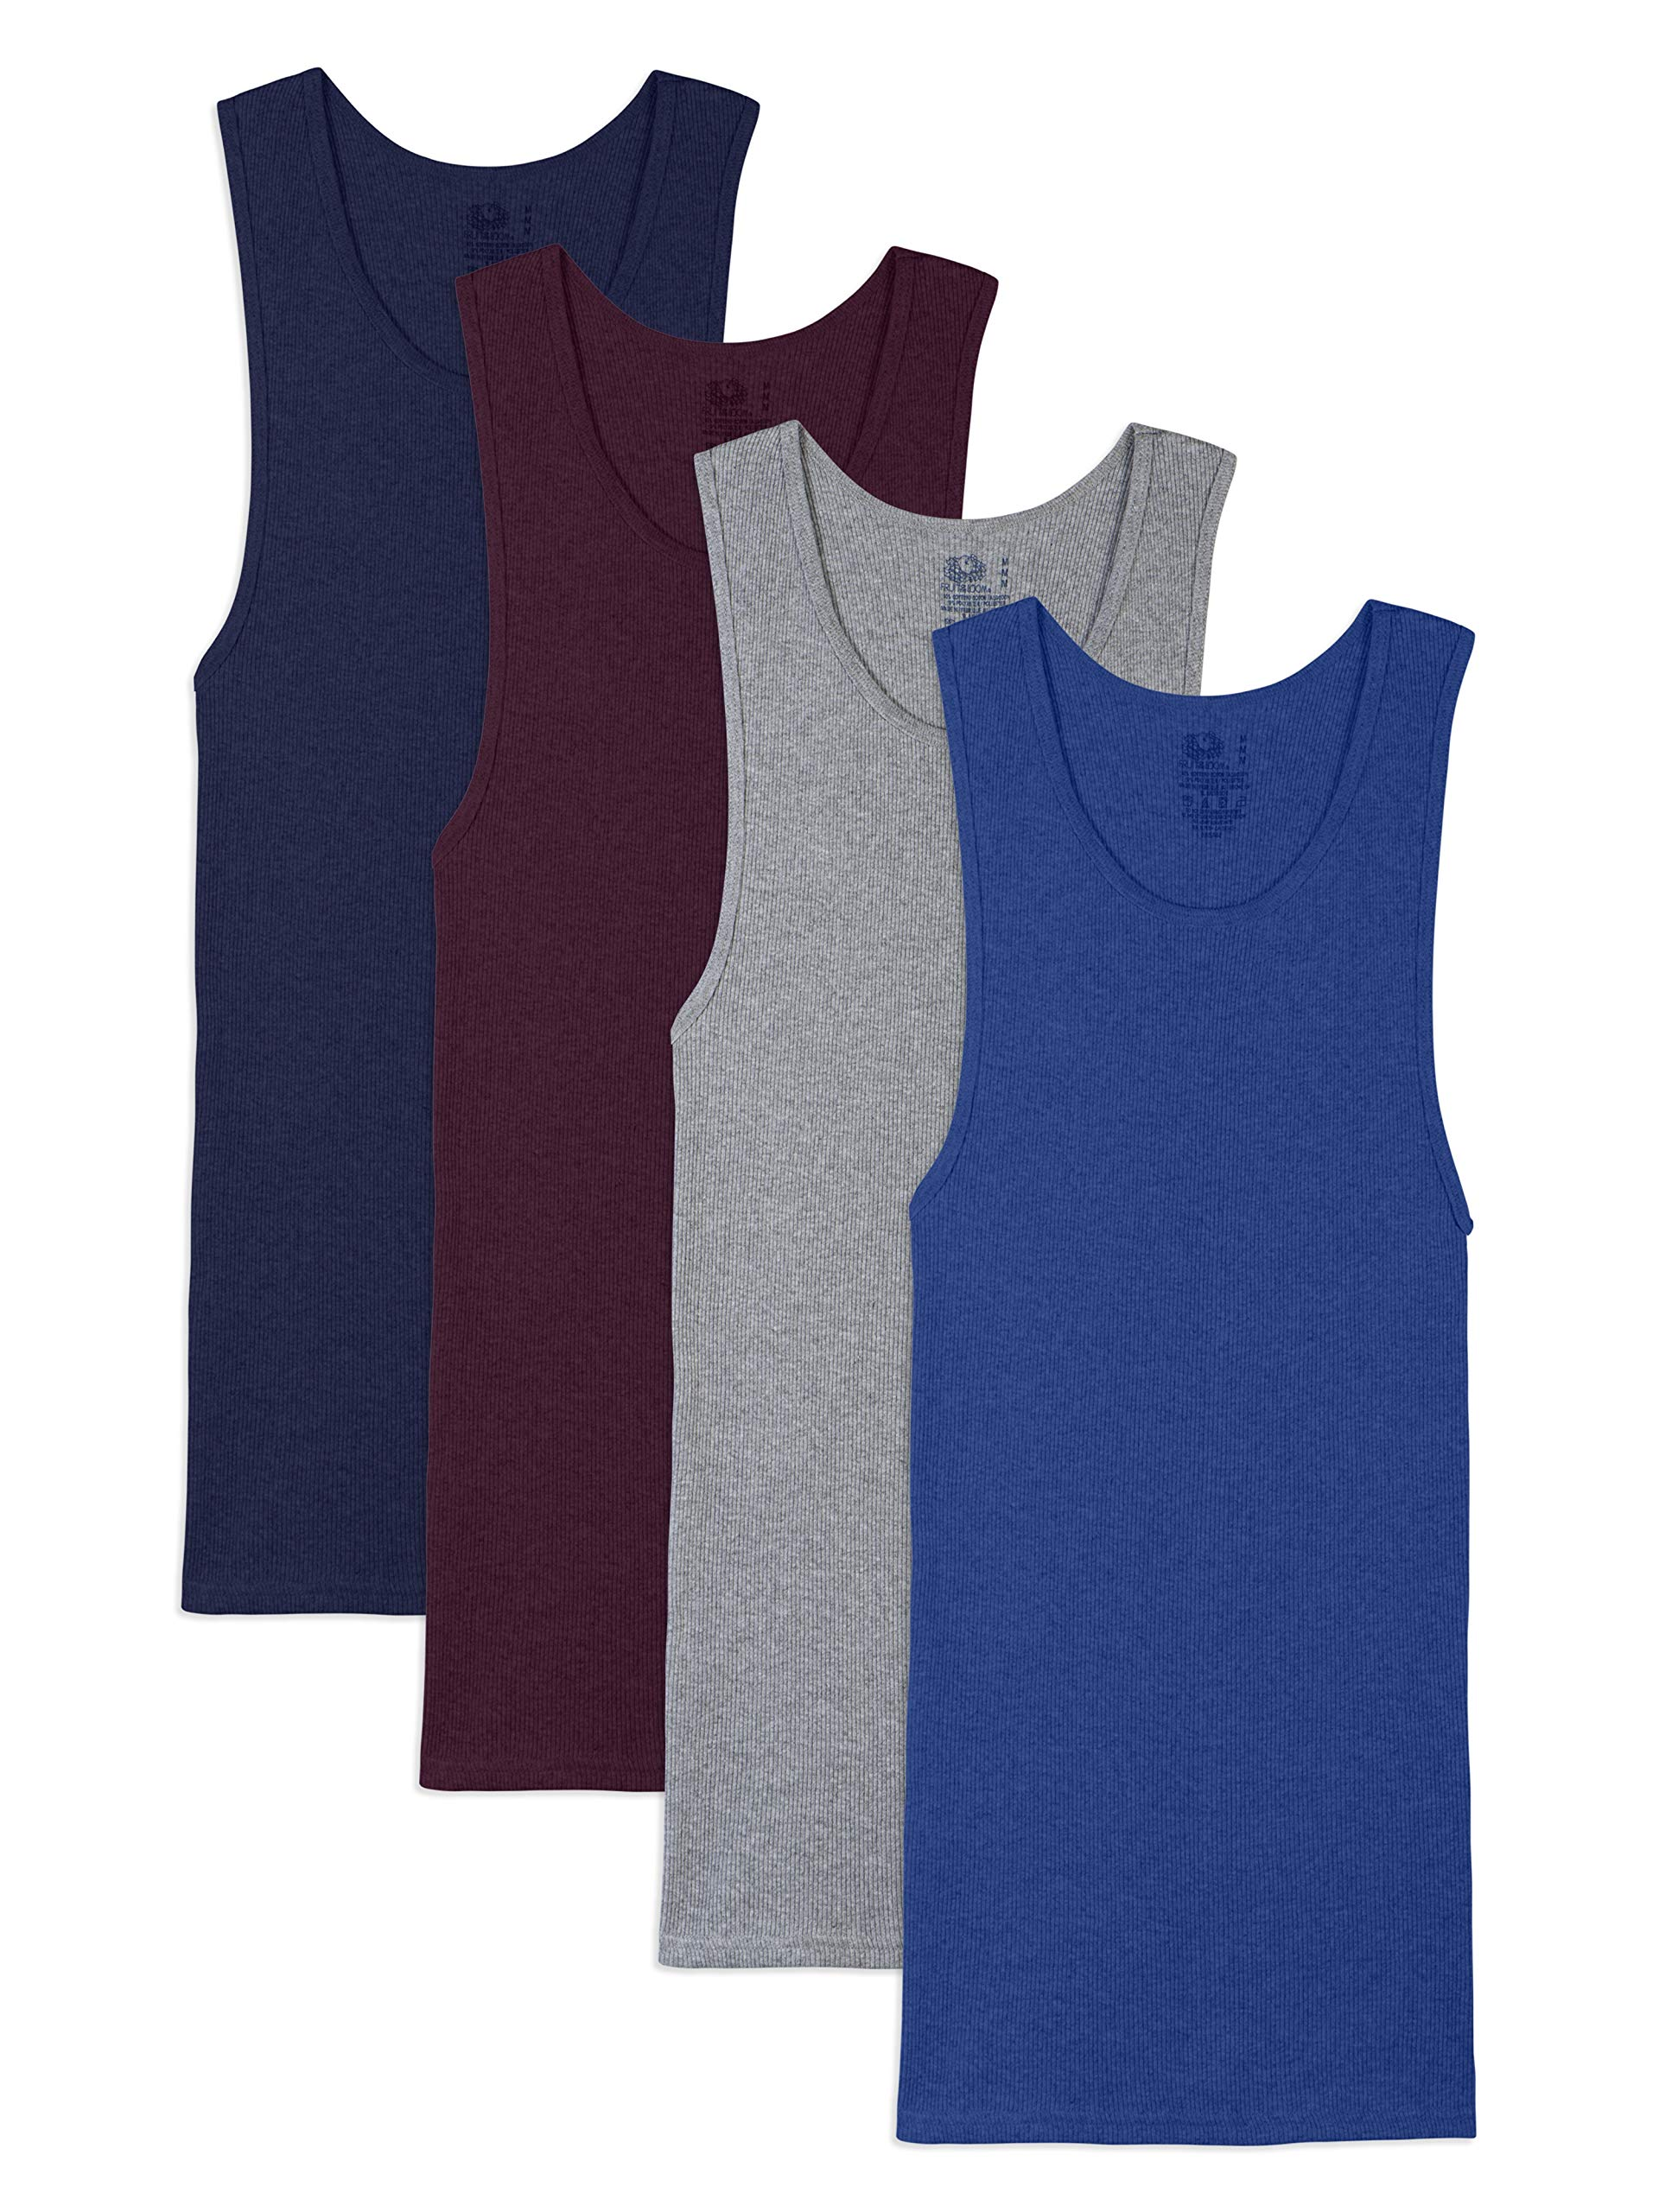 Fruit of the Loom Men's A-Shirt (Pack of 4), Assorted, XXX-Large by Fruit of the Loom